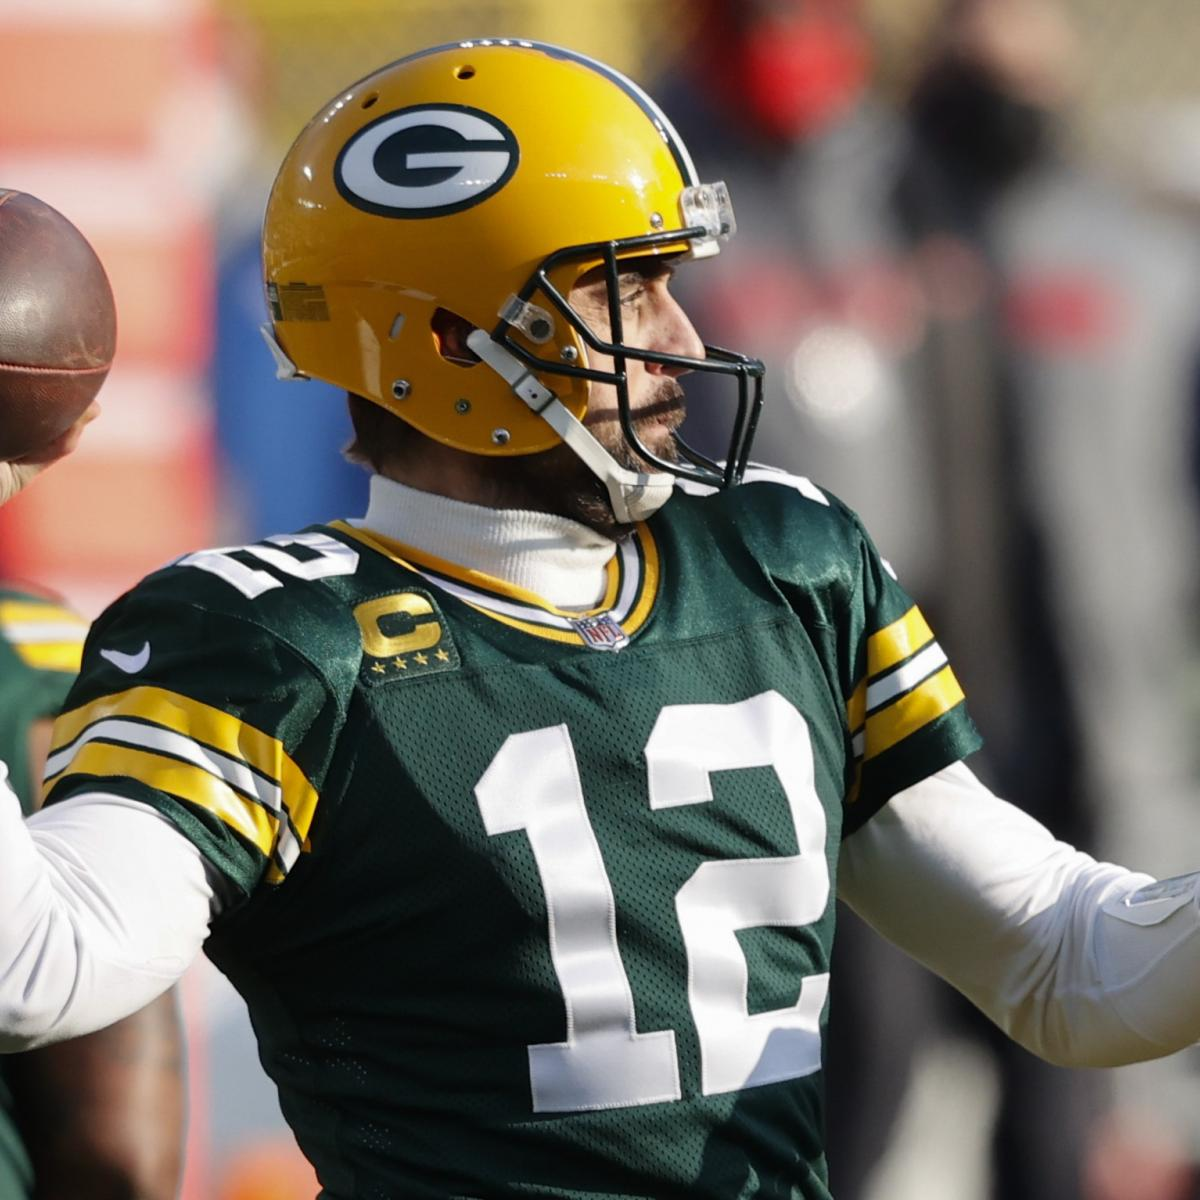 Packers Have Drafted 1 Offensive Player in 1st Round Since 2012: QB Jordan Love